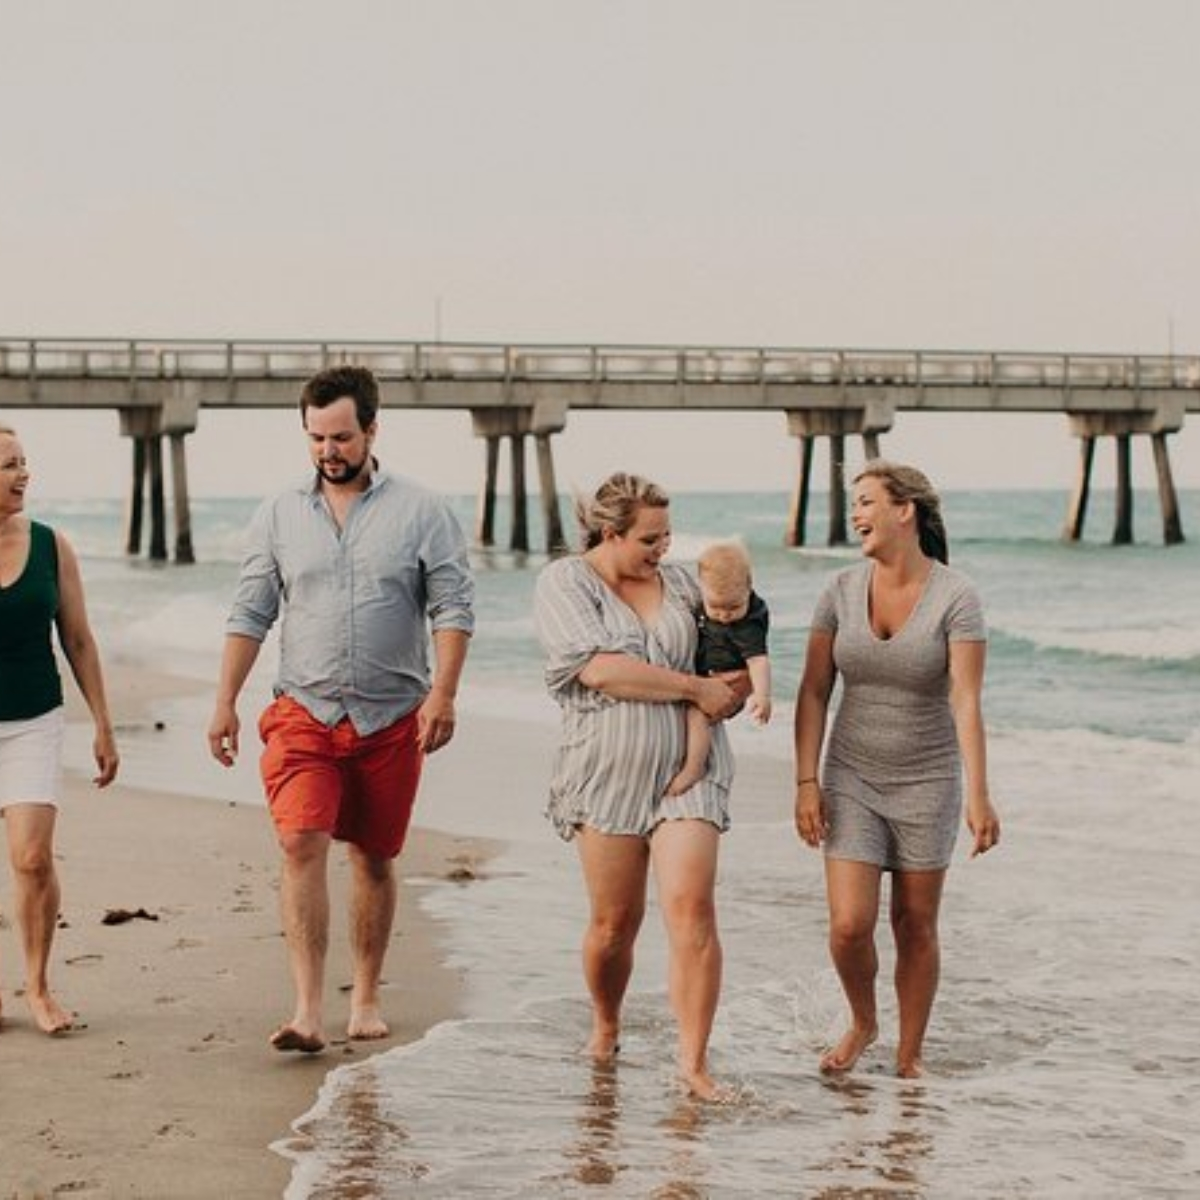 90 Minute Private Vacation Photography Session with Photographer in Ft Lauderdale Images